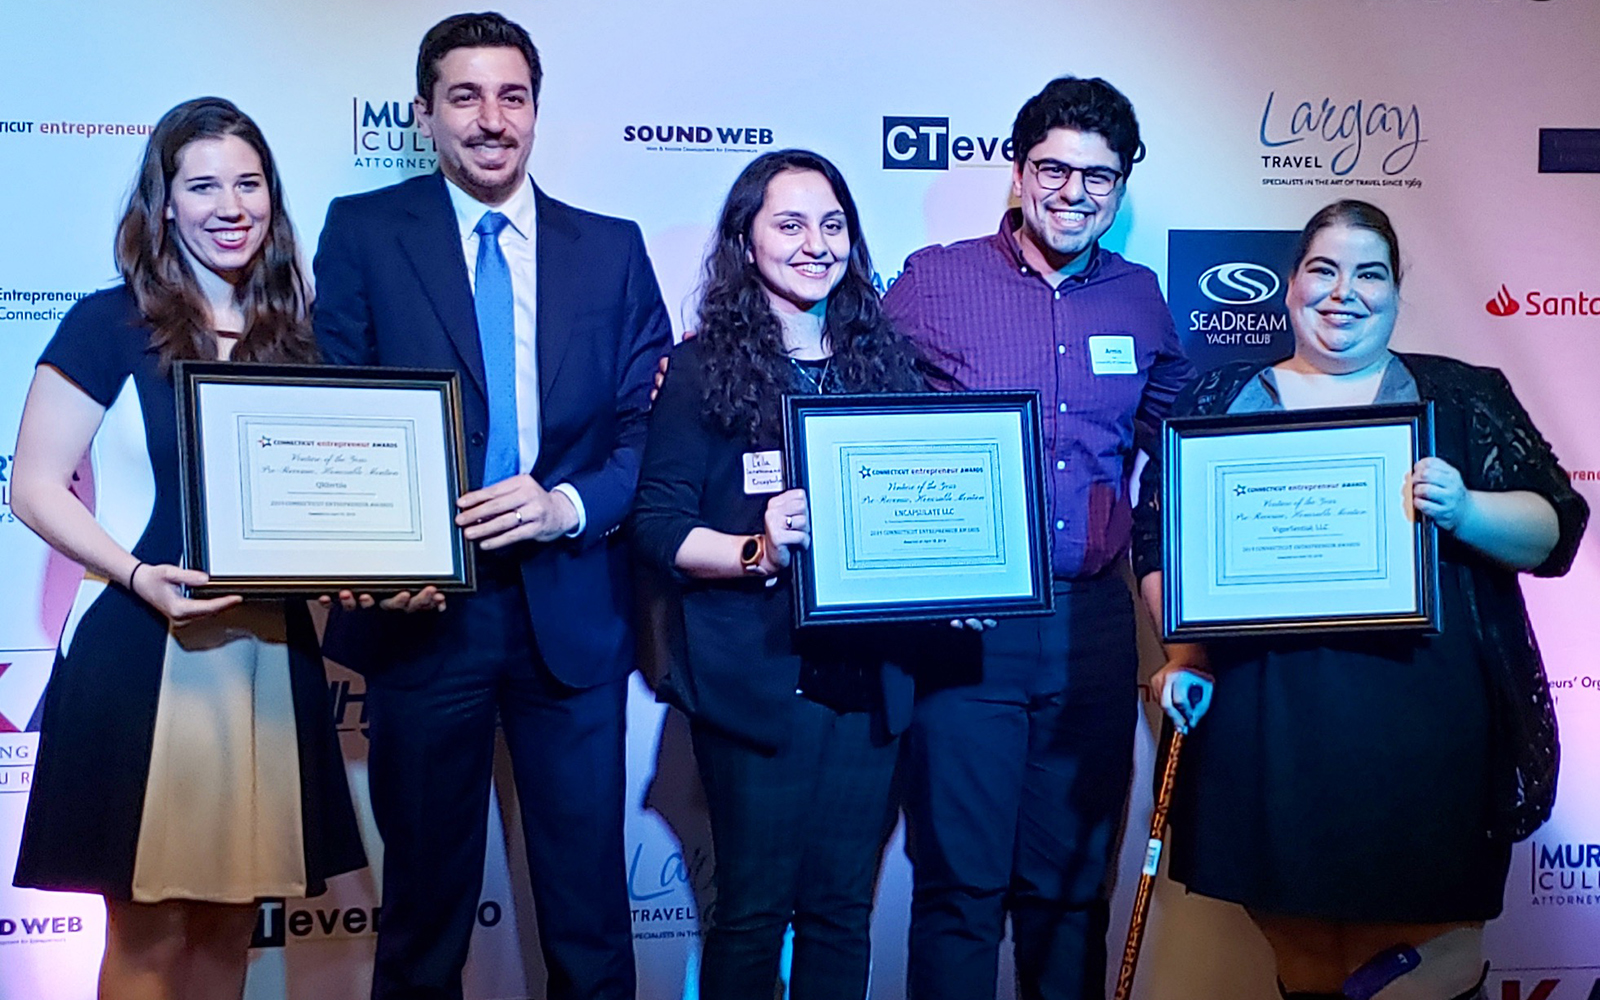 QRFertile, Encapsulate, and VigorSential, all UConn-grown startups, received awards. (Contributed Photo)